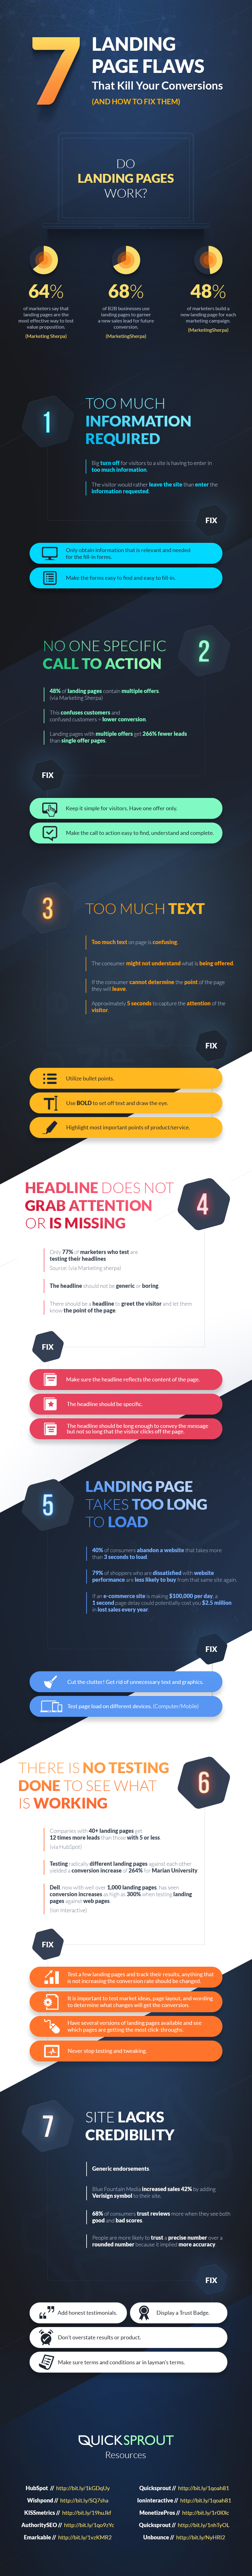 Infographic: How to fix 7 landing pages flaws that kill your e-marketing conversion